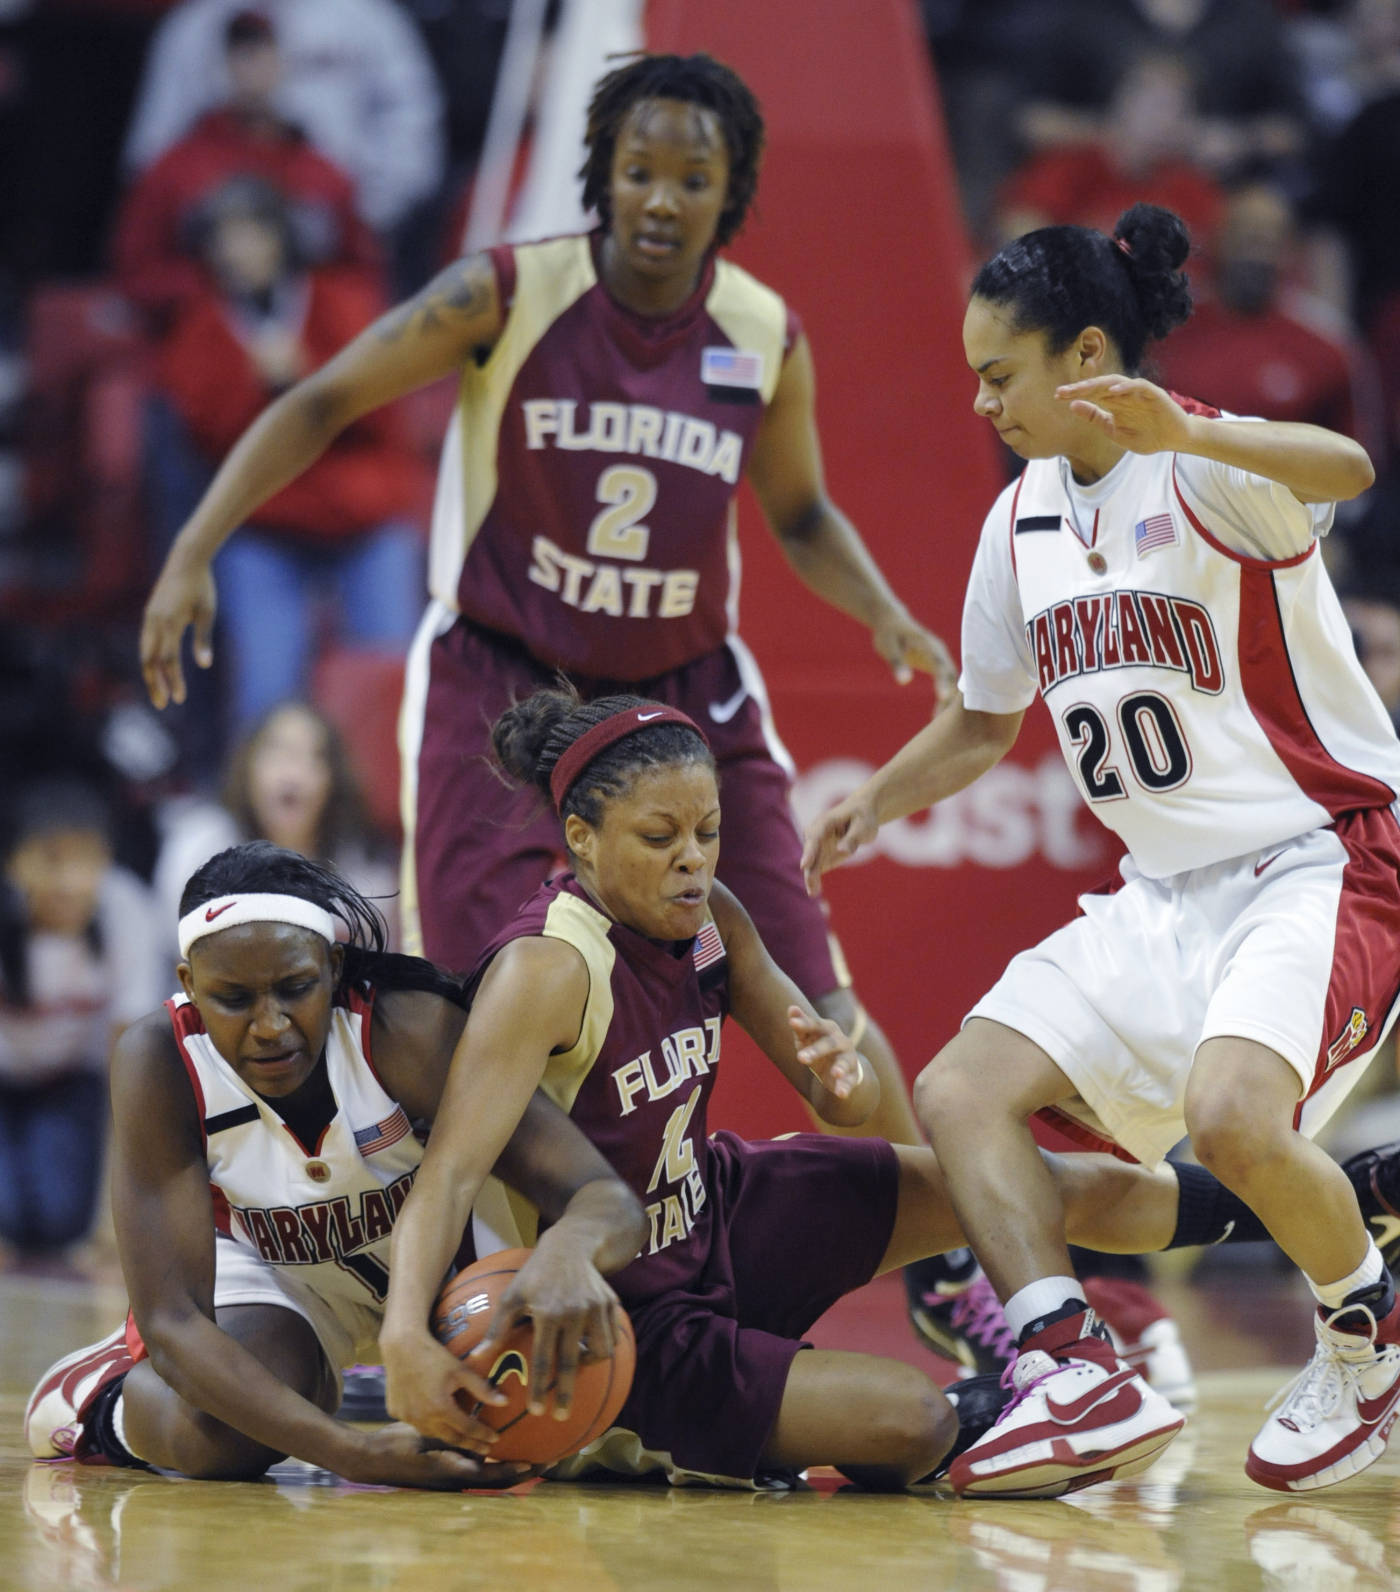 Maryland's Crystal Langhorne, left, and Florida State's Courtney Ward struggle for a loose ball during the first half of a college basketball game Sunday, Feb. 24, 2008 in College Park, Md. Also pictured is Maryland's Kristi Toliver, (20), and Alysha Harvin. Maryland won 92-84 in overtime. (AP Photo/Gail Burton)